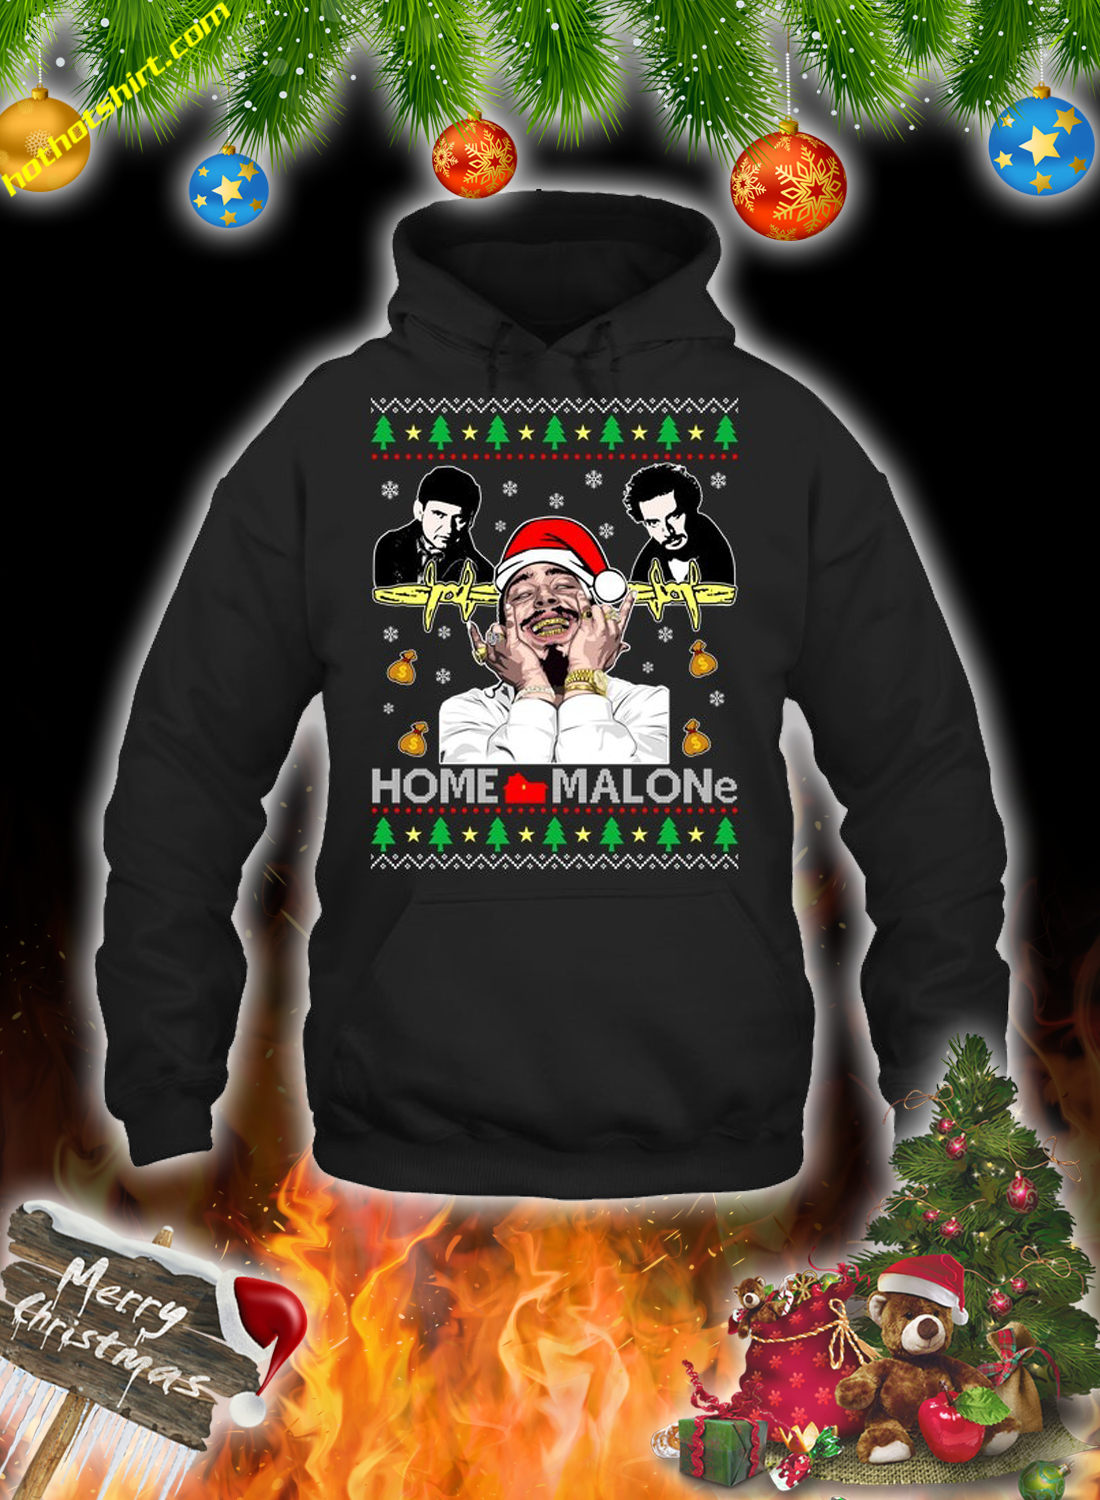 Home malone christmas sweatshirt and jumper 1